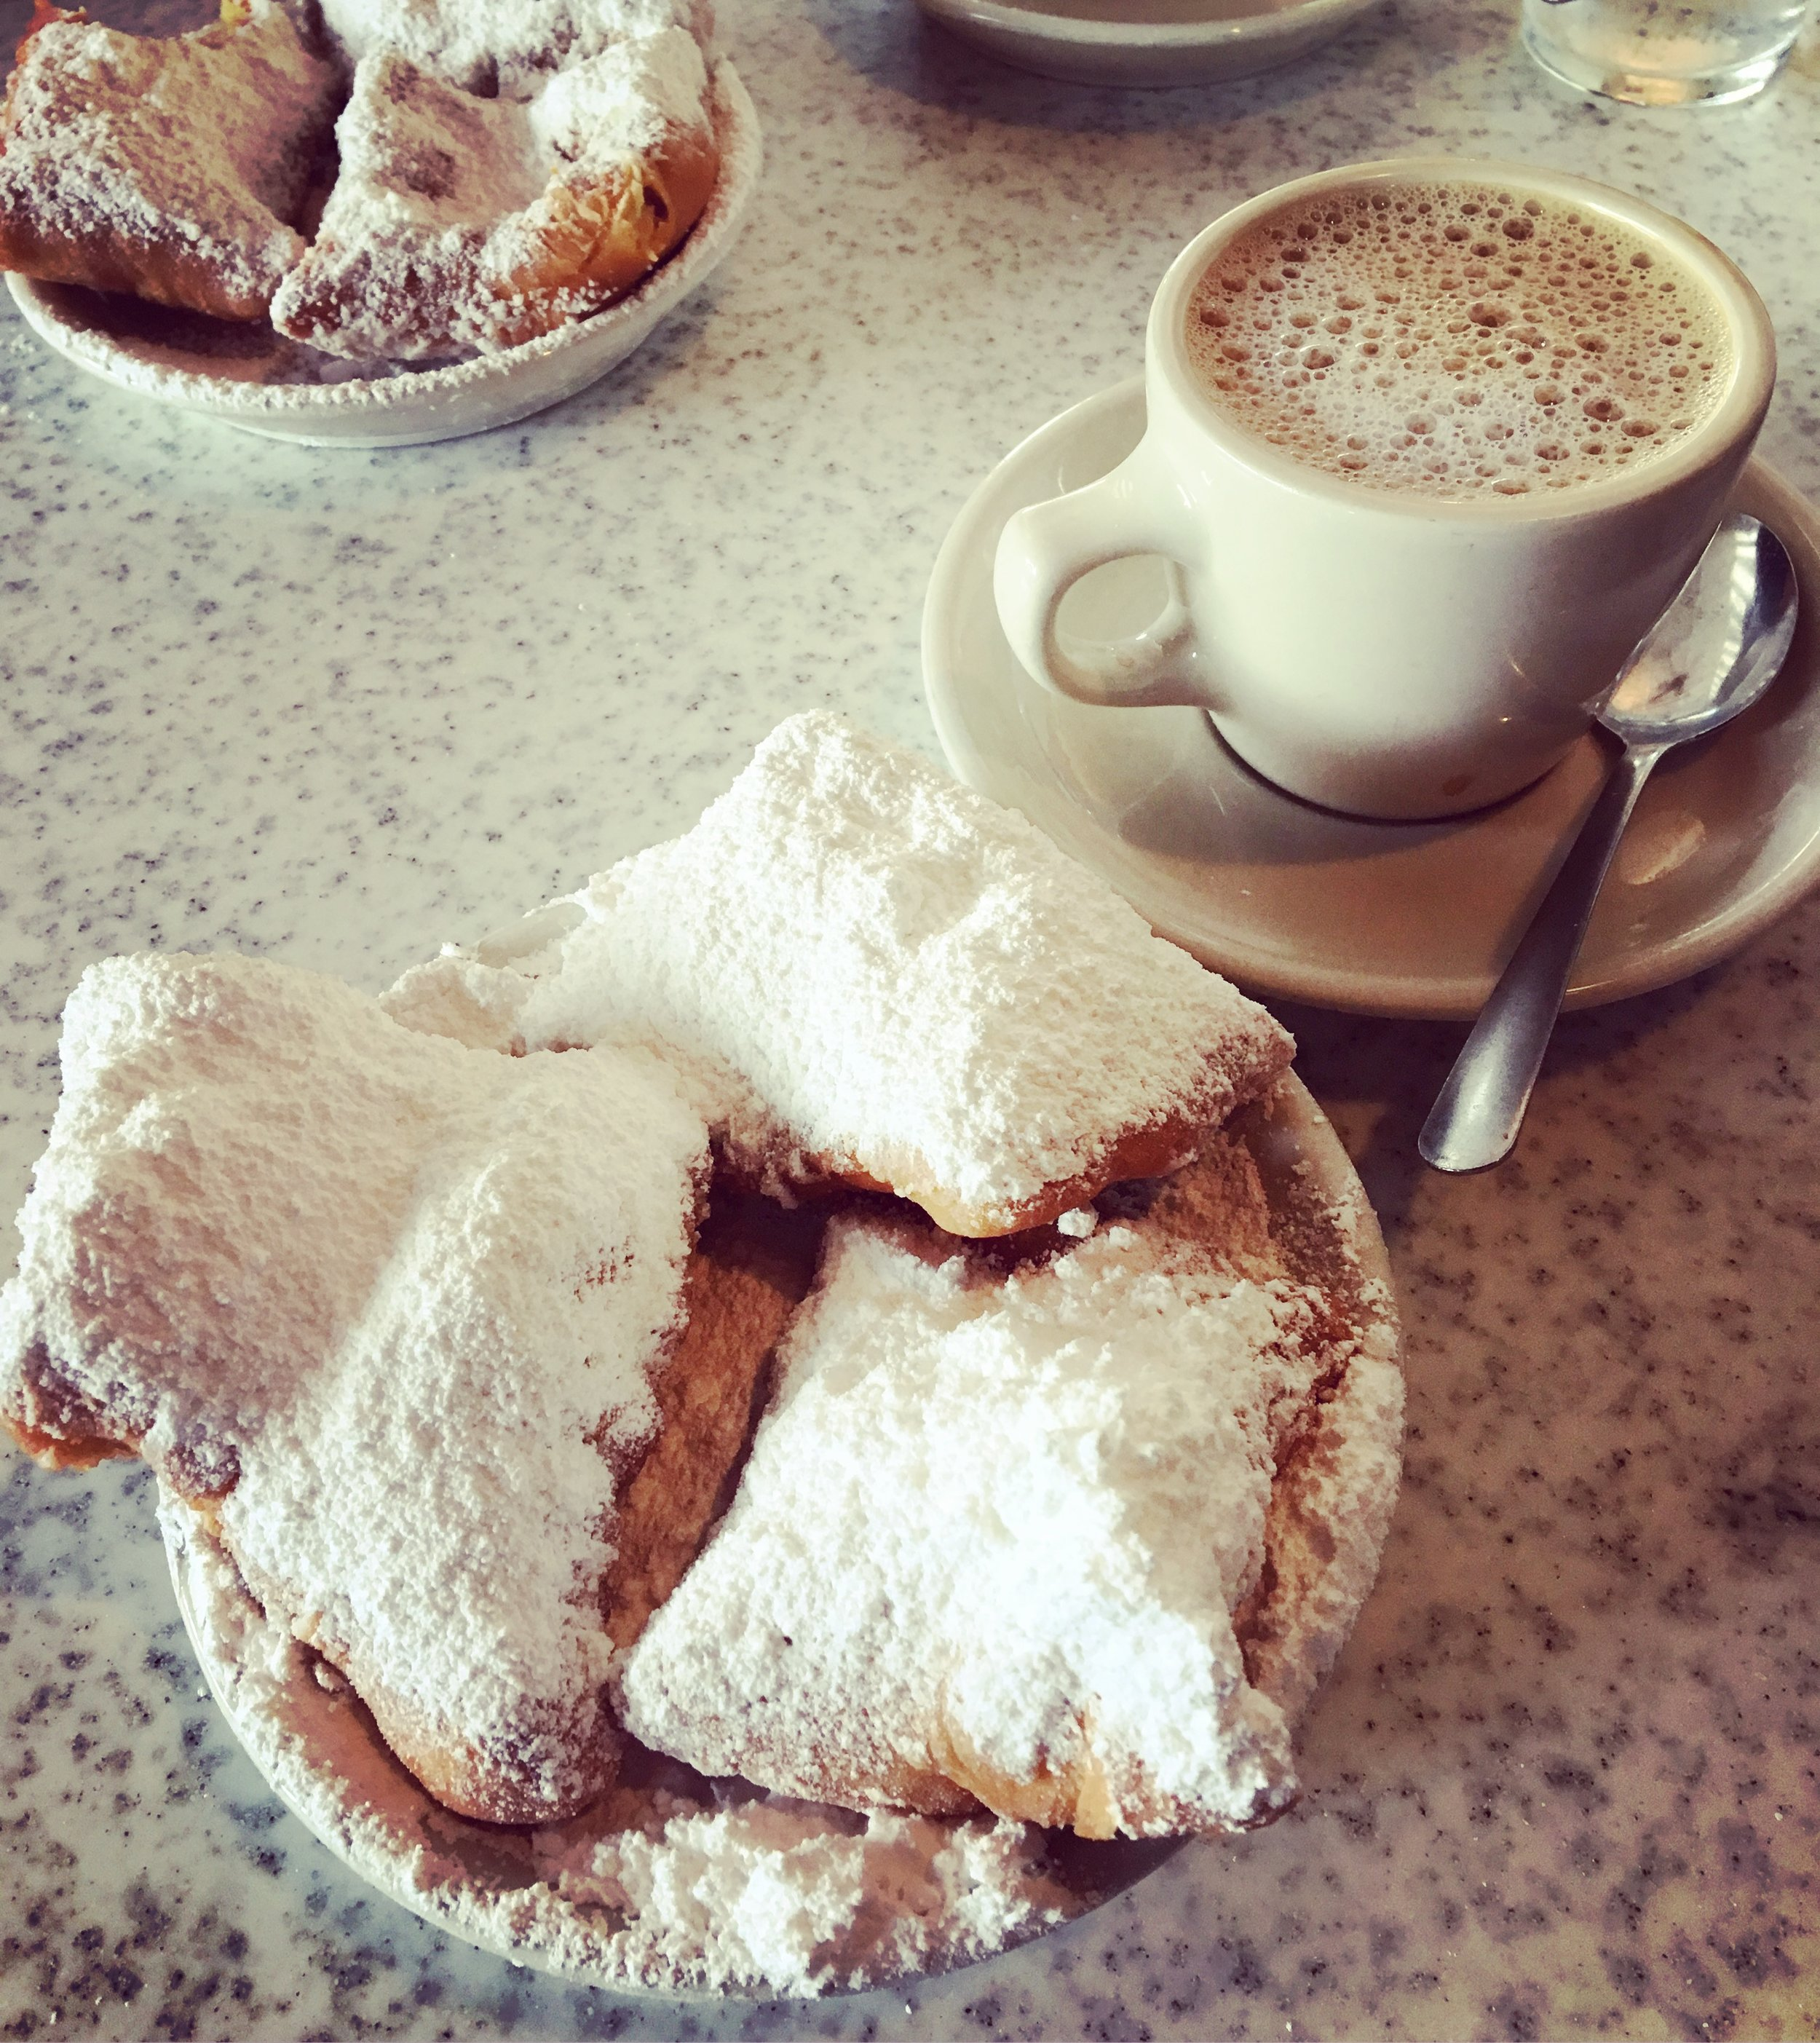 Beignets, of course, at Cafe Du Monde